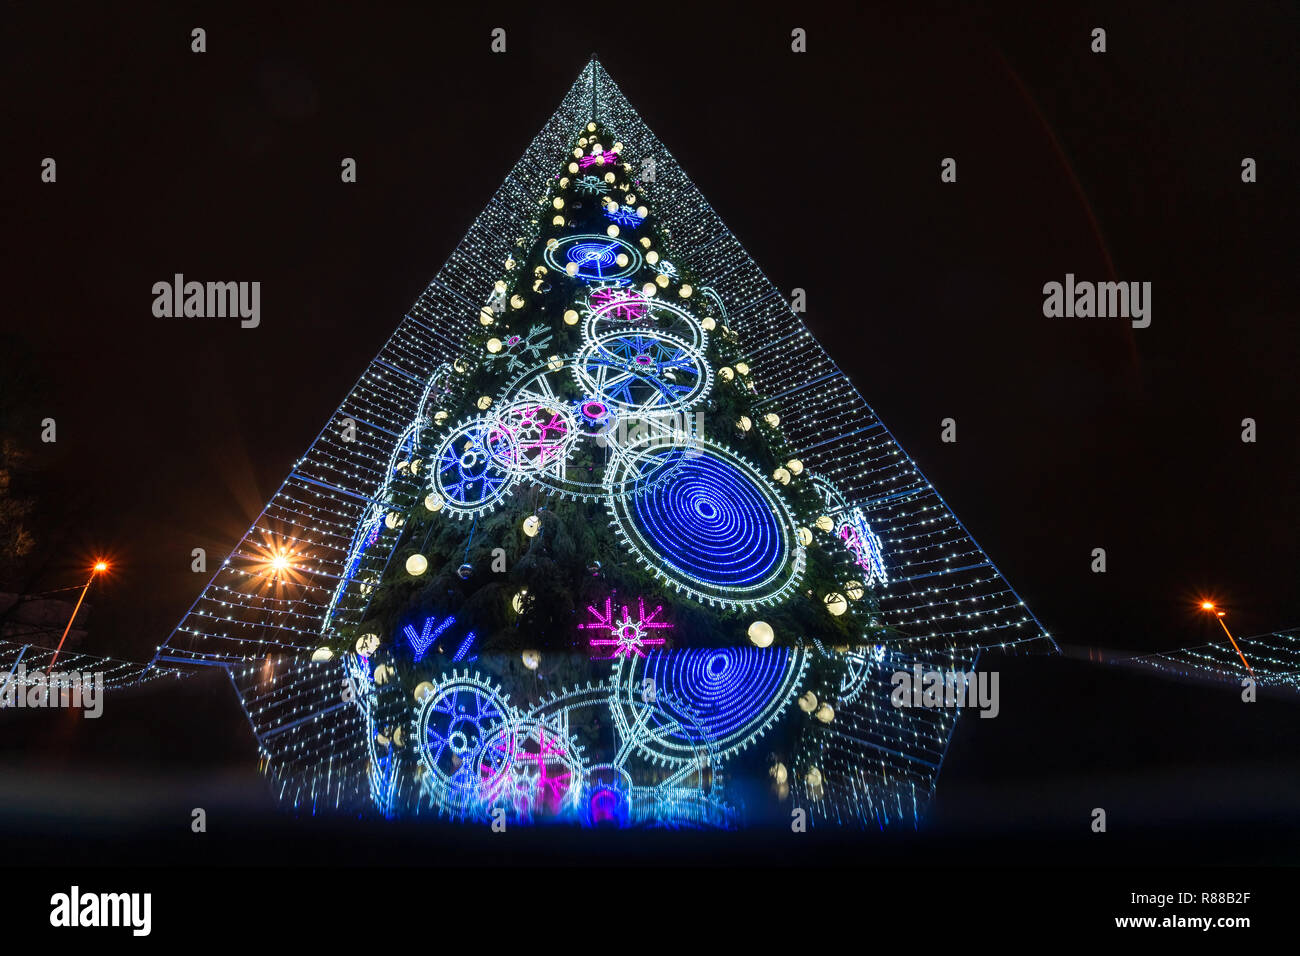 Decorated Christmas tree in Vilnius with reflection on mobile phone screen Stock Photo